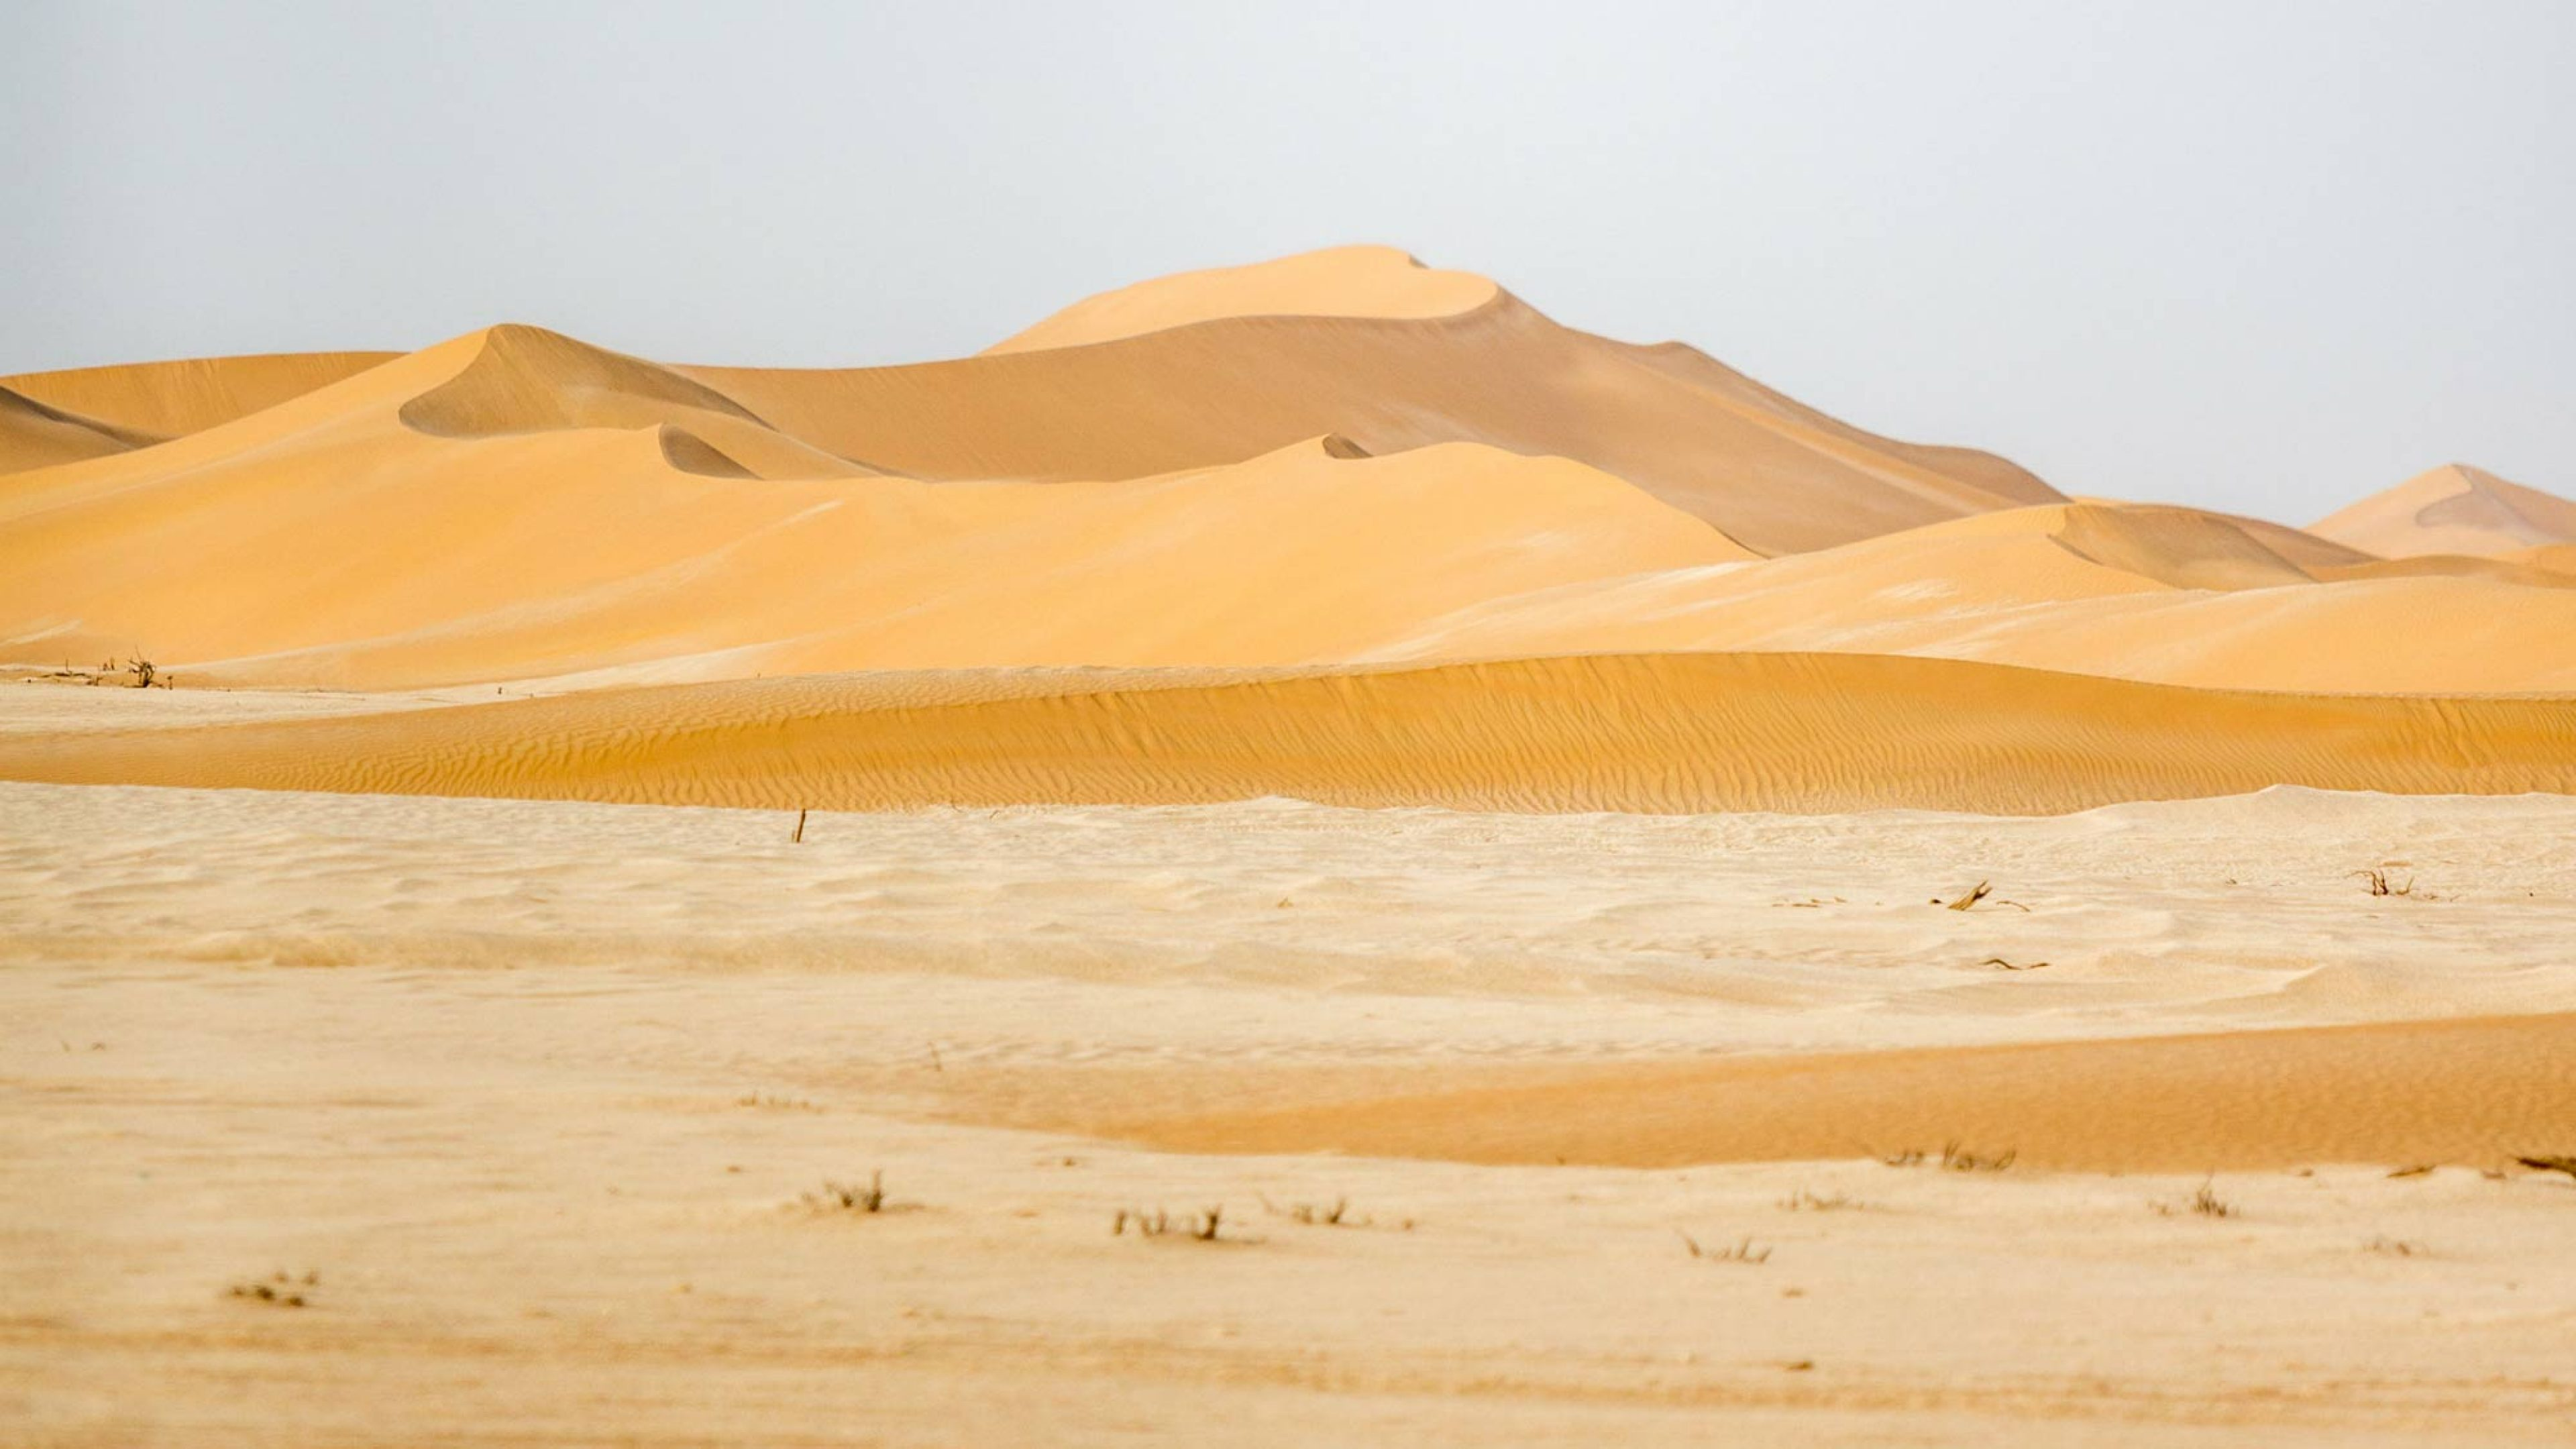 The Omani desert